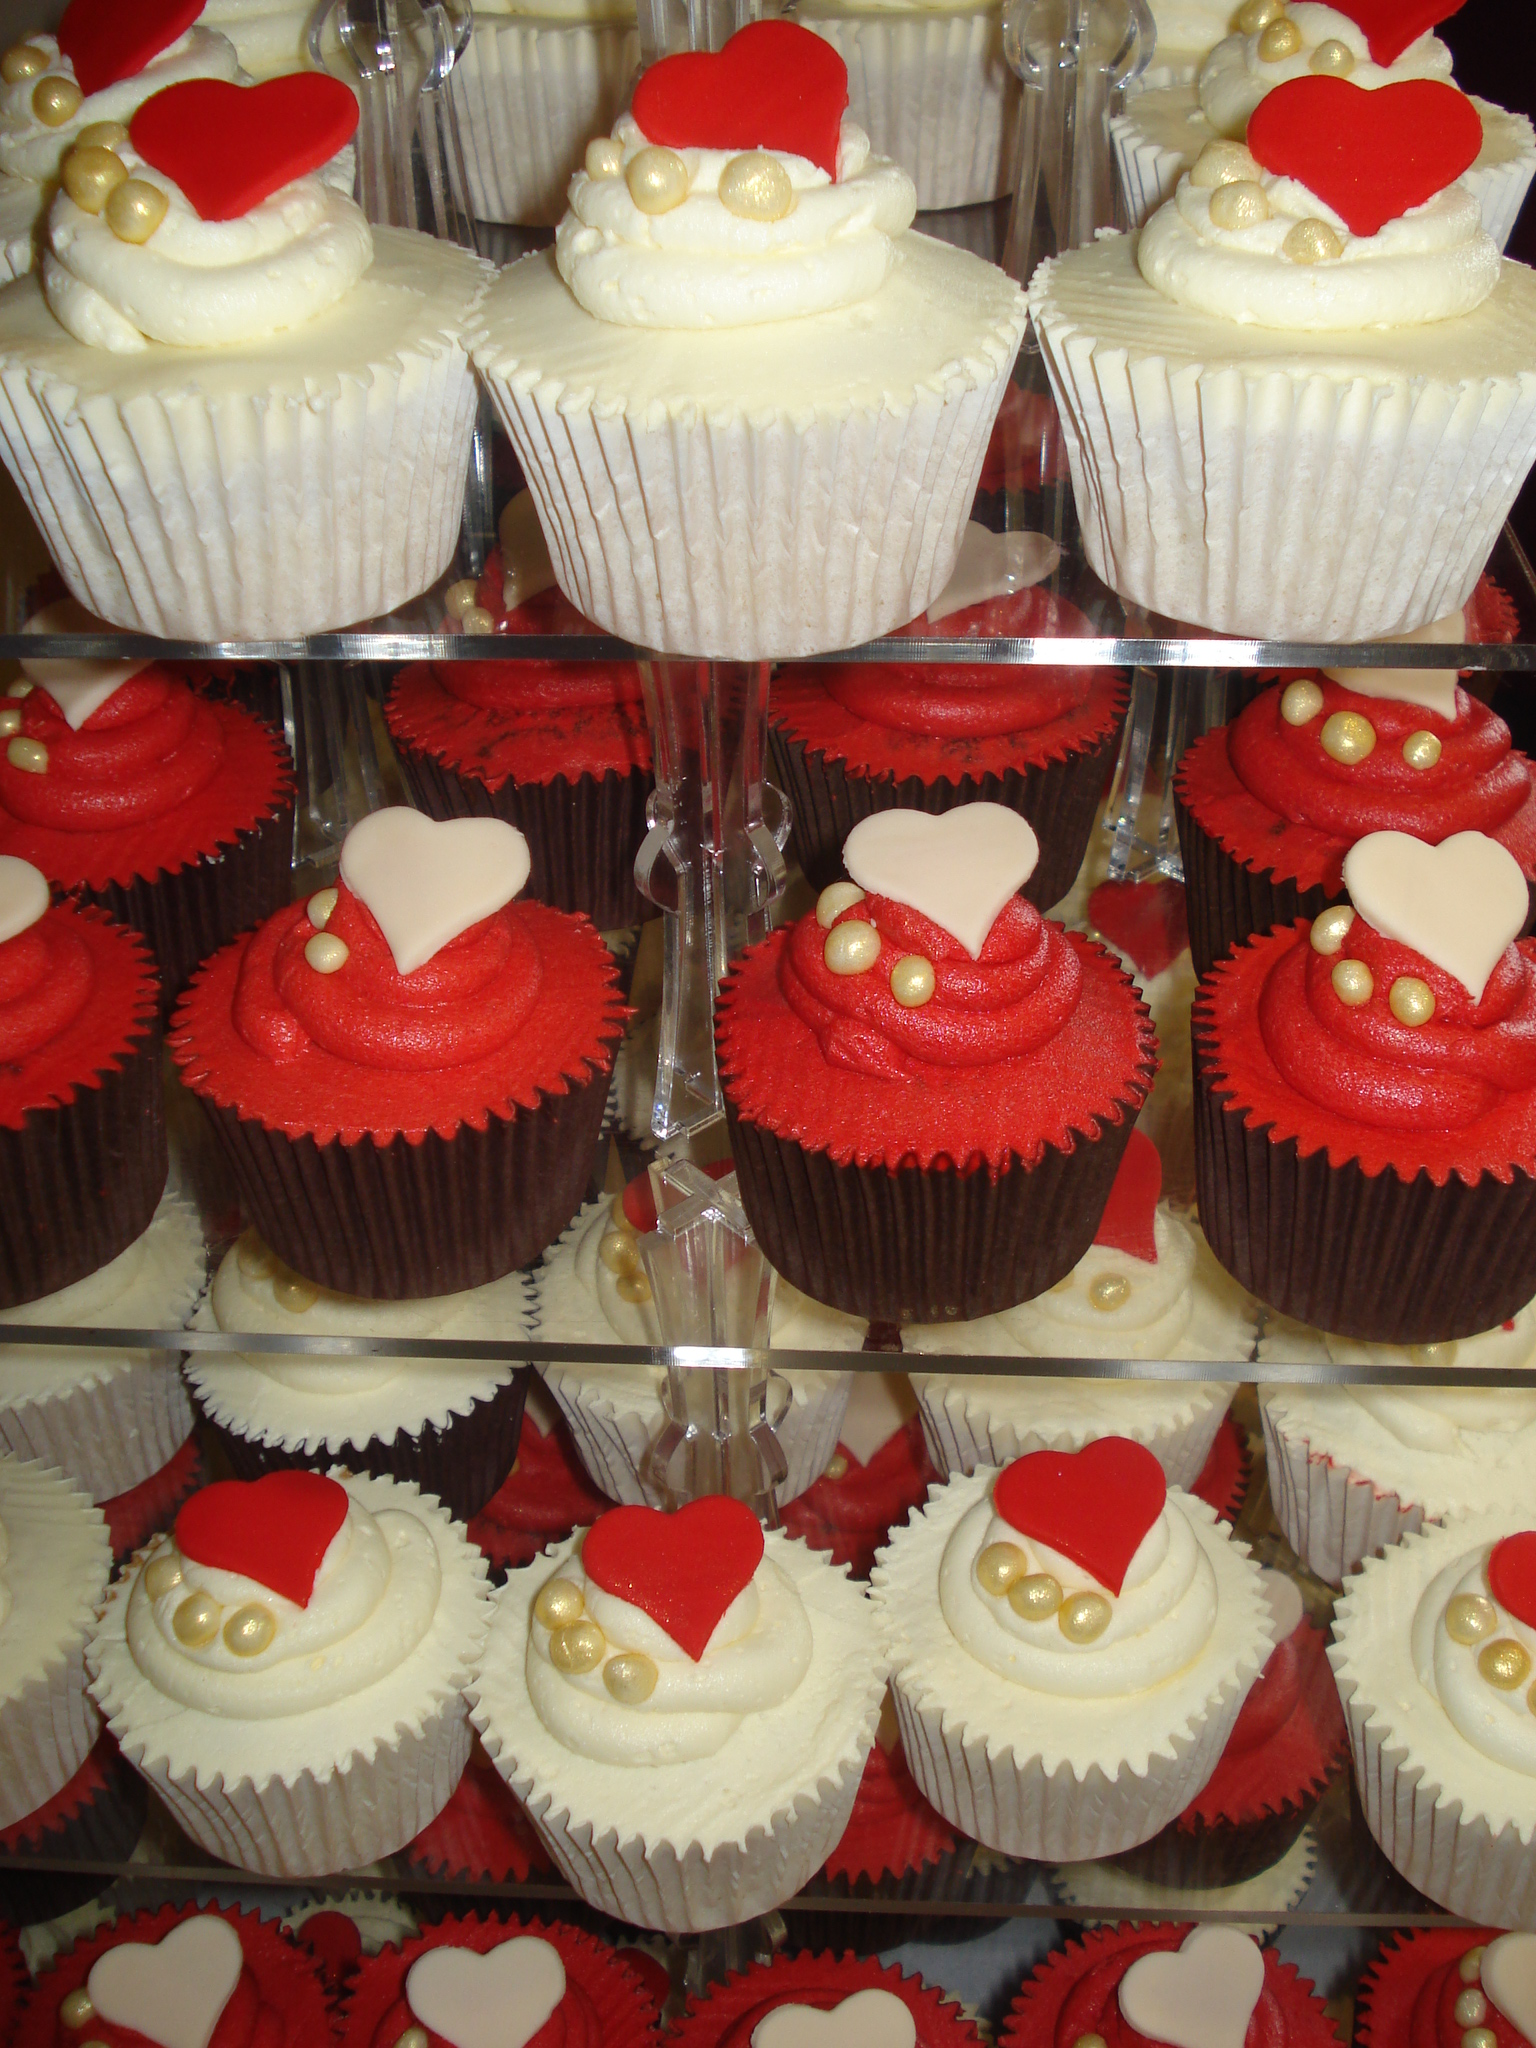 Chinese red and ivory wedding cupcakes